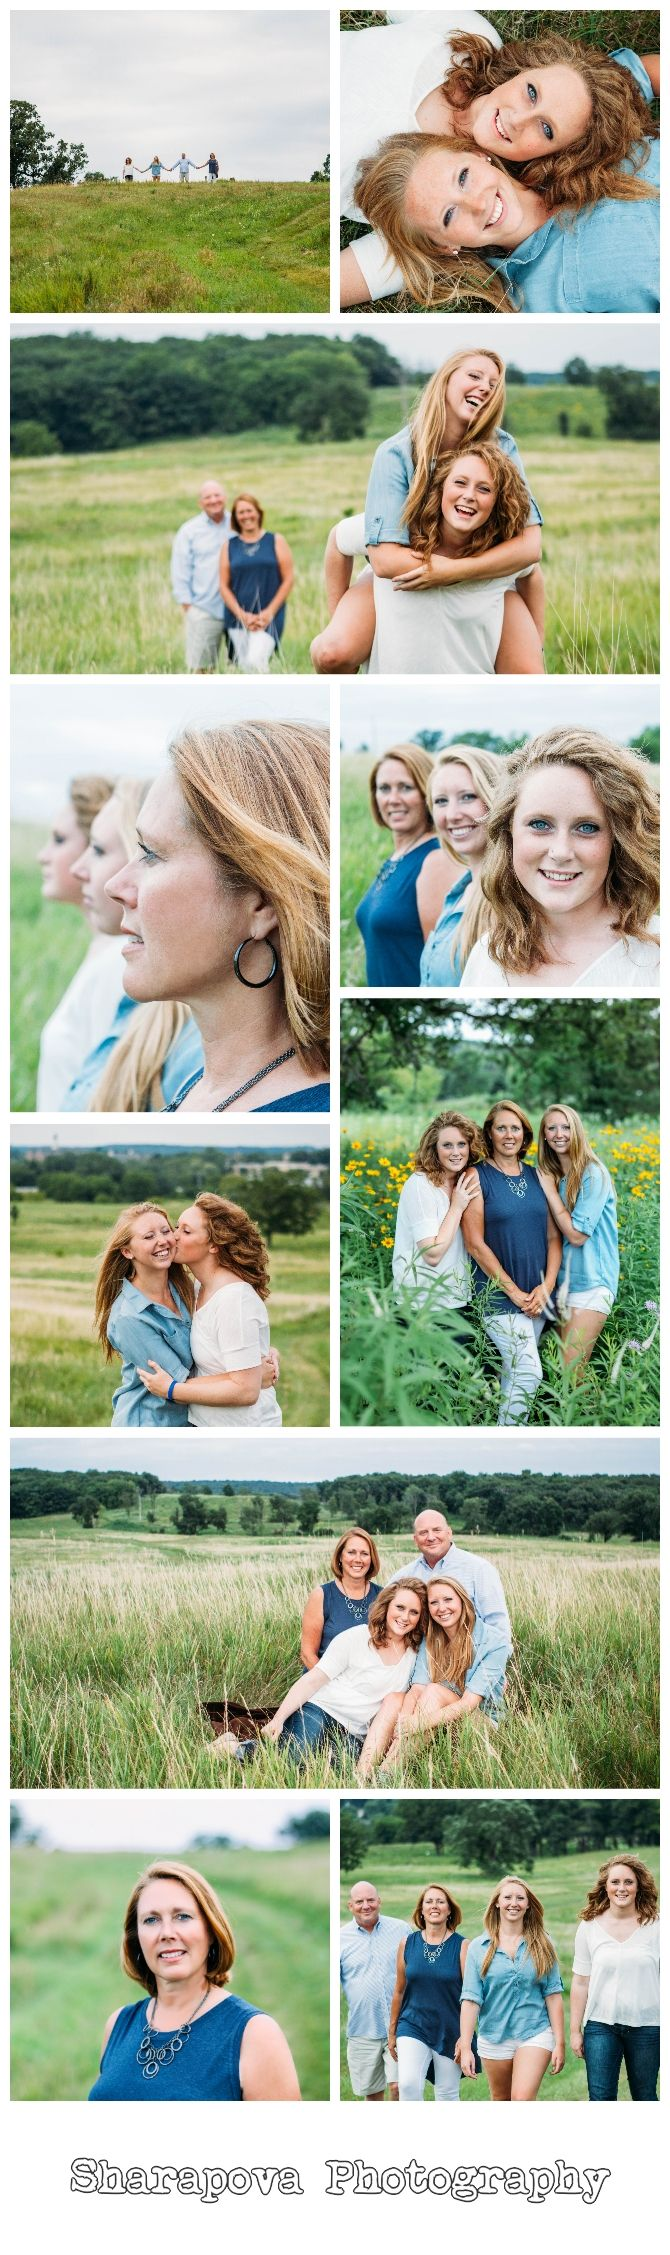 """Wandering The Wisconsin Prairie"" - Natural light outdoor family pictures, parents with their college kids by Sharapova Photography"